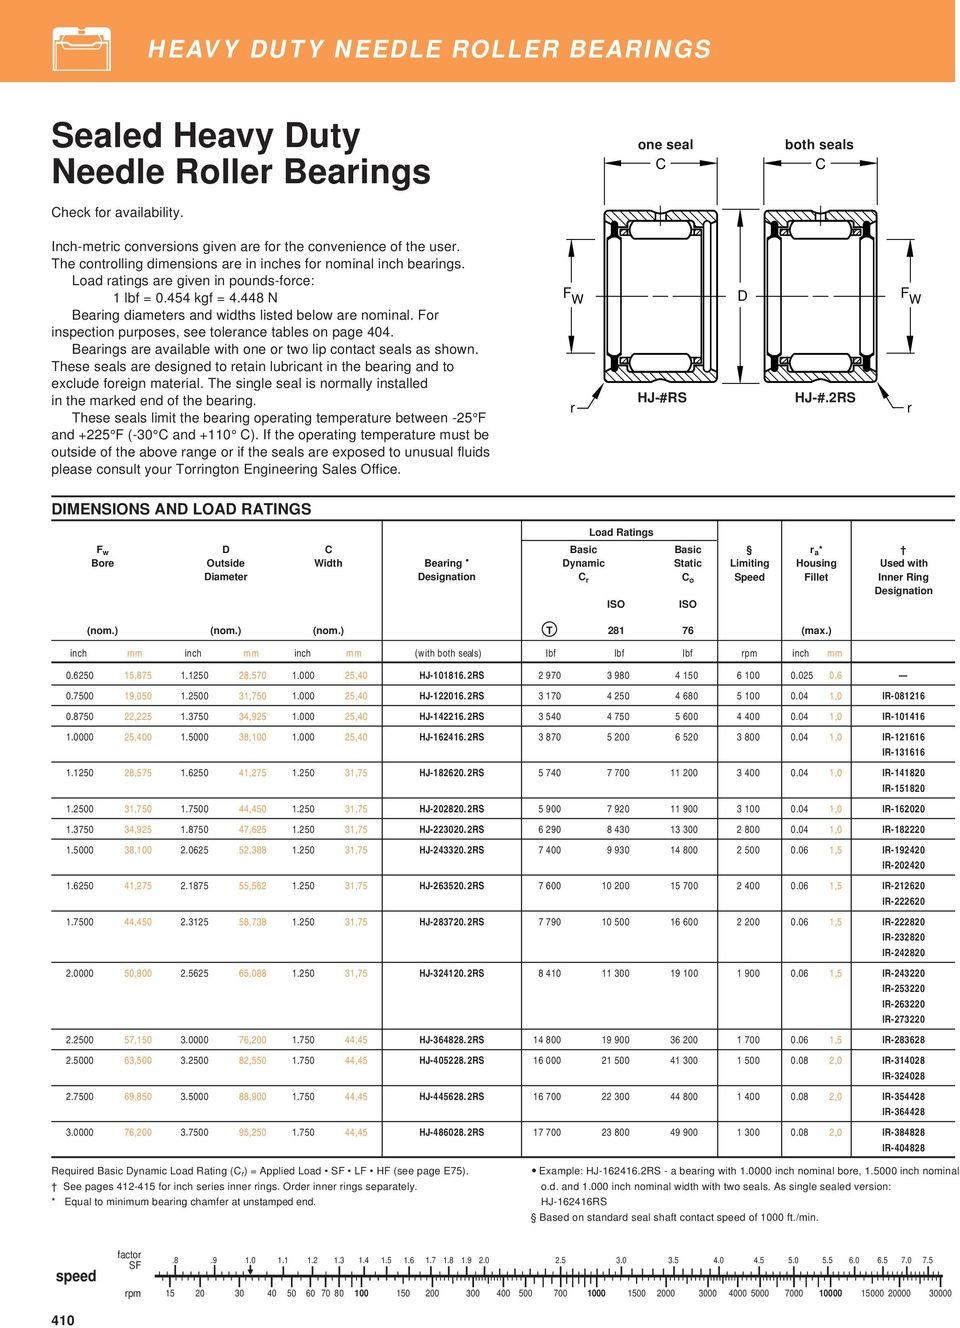 For inspection purposes, see tolerance tables on page 404. Bearings are available with one or two lip contact seals as shown.